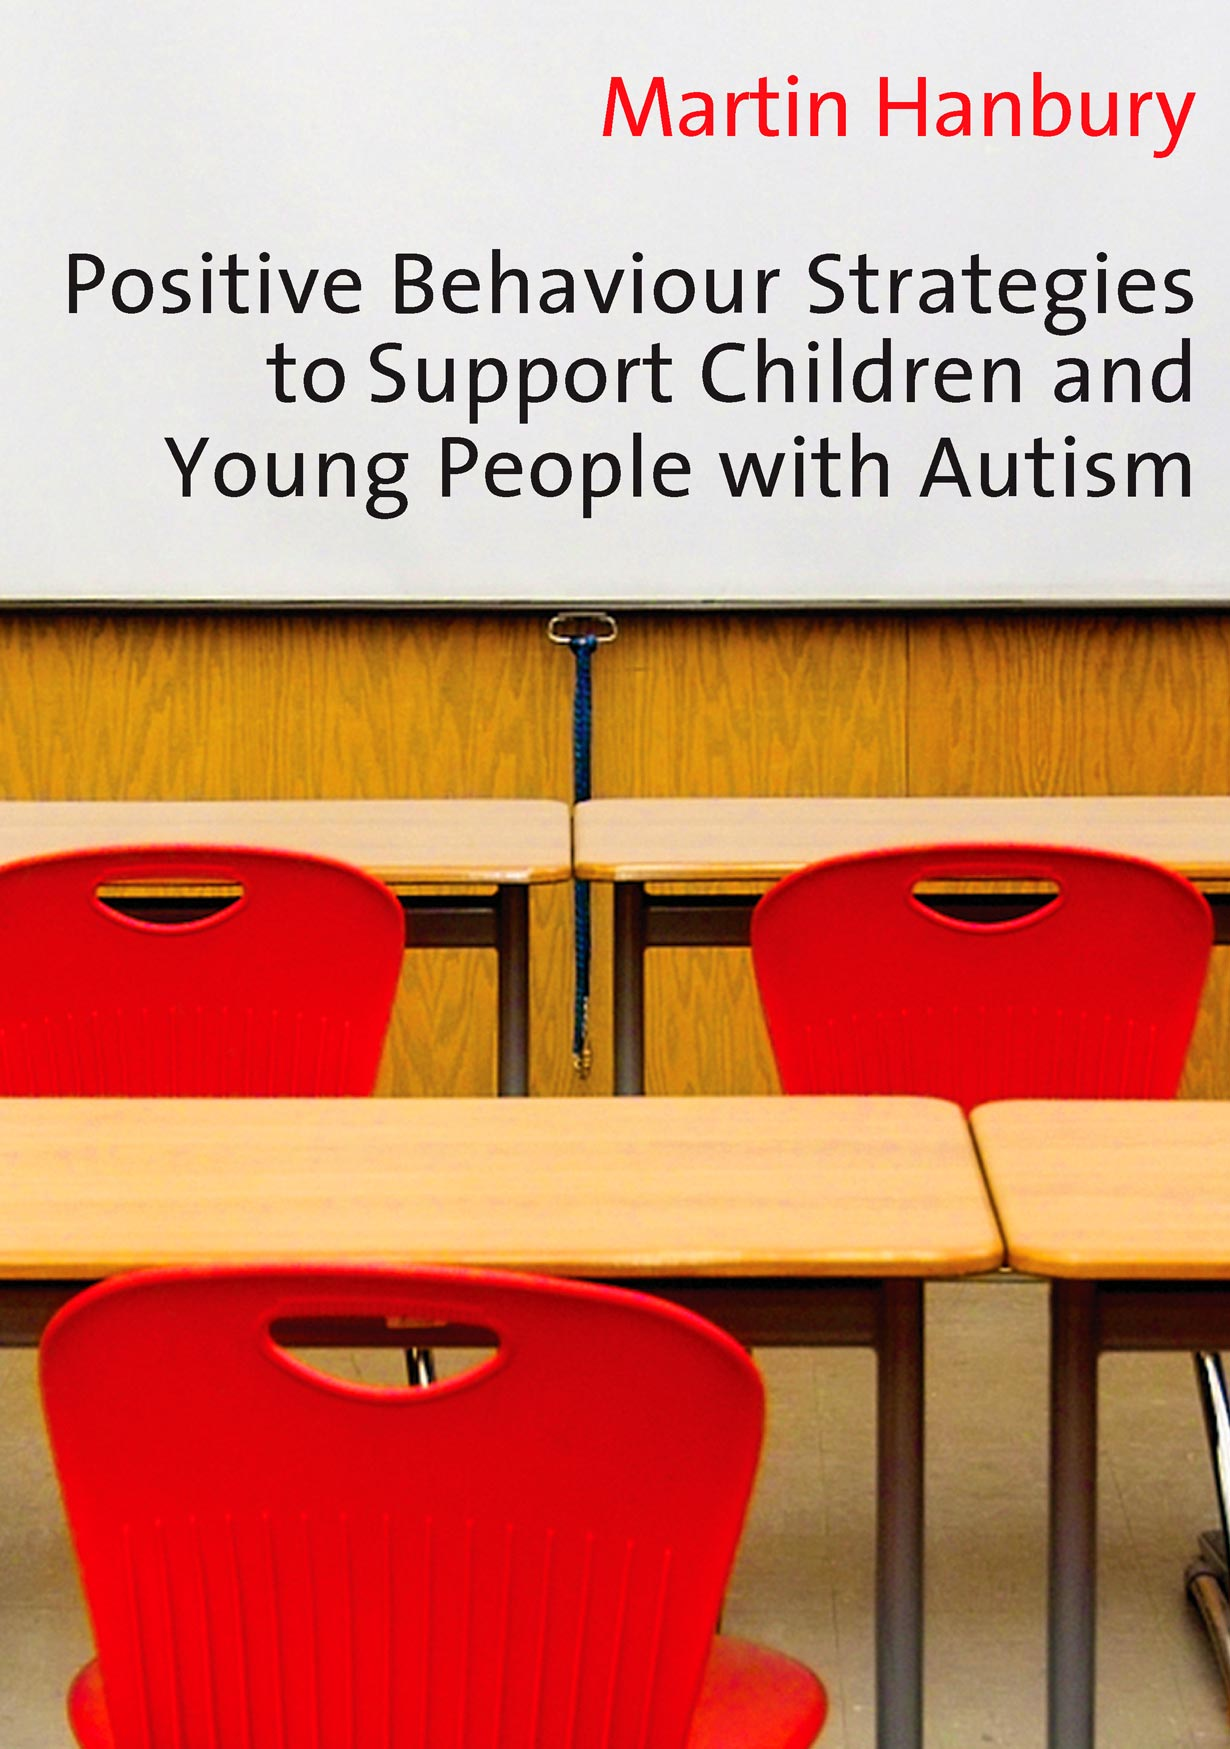 support children and young people to achieve their education potential essay It contributes to developing young people's full potential to help build a better and peace-ful world of autonomous, supportive, responsible and committed persons, who play a constructive  to achieve human rights, health, security, dignity, freedom, justice and peace  a commitment to enabling children and young people to express their.